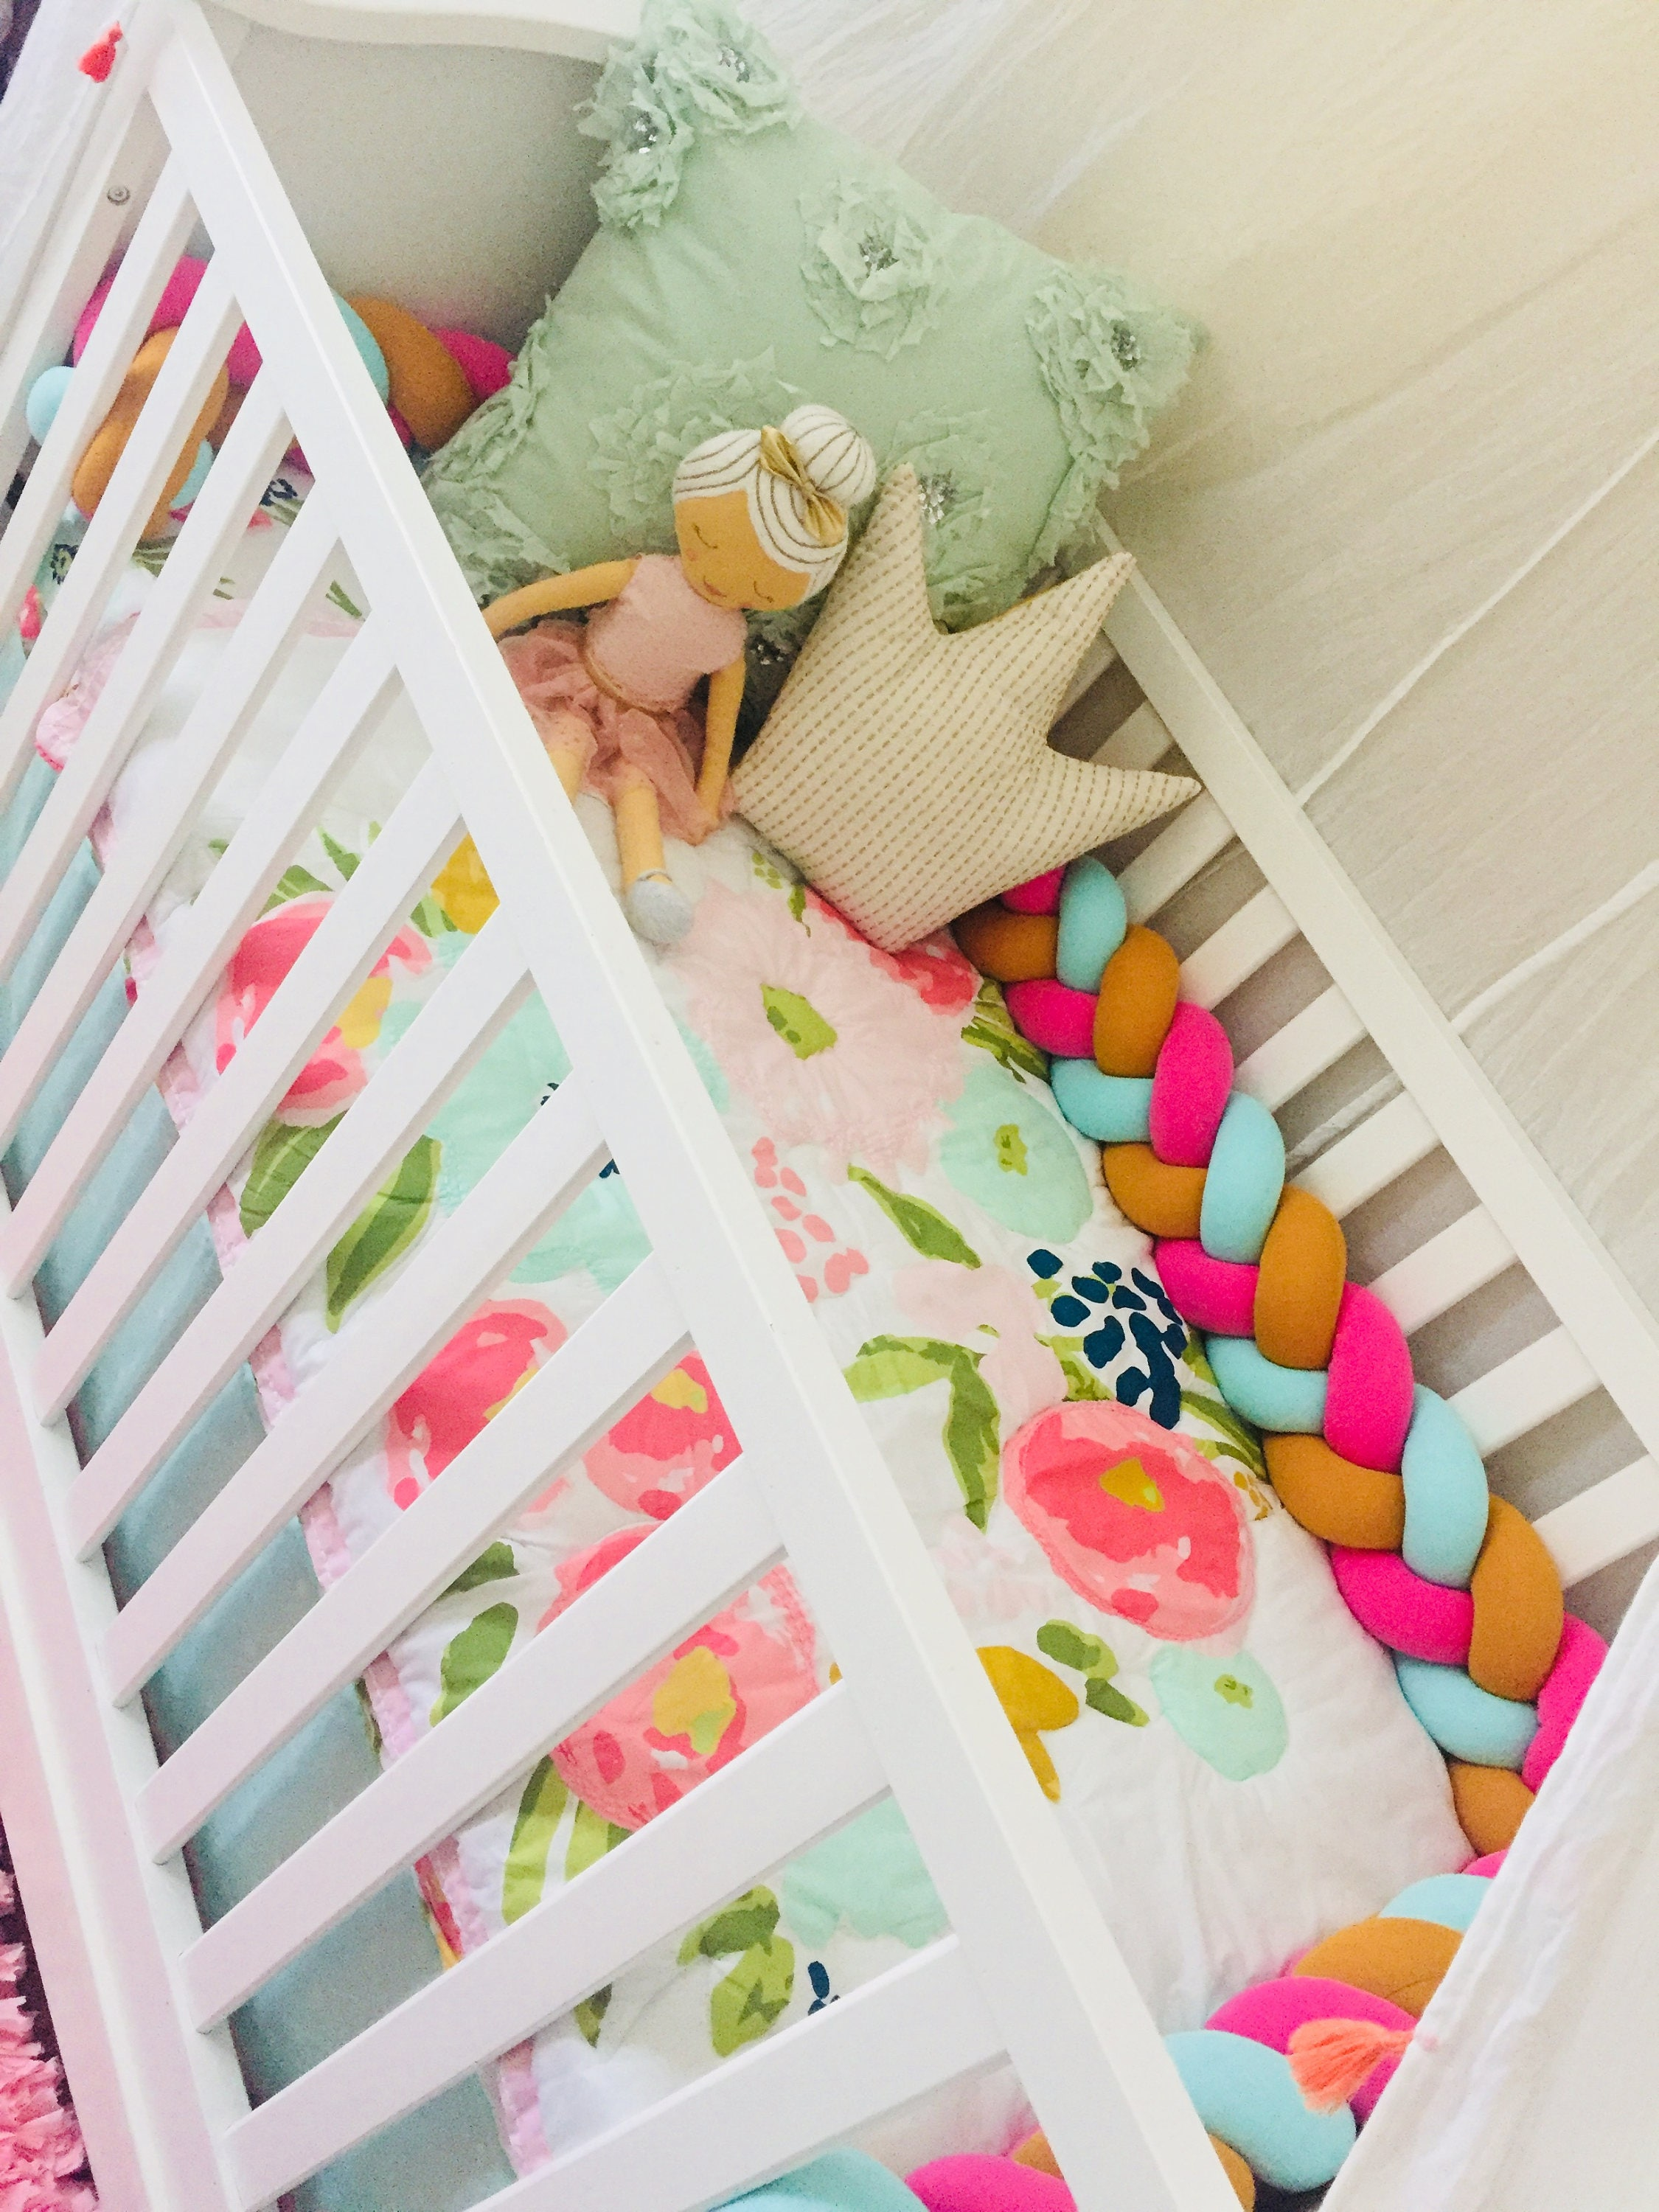 crib babies ruffle designs carousel bumper large strips accent bumpers baby all ritzy and designer with